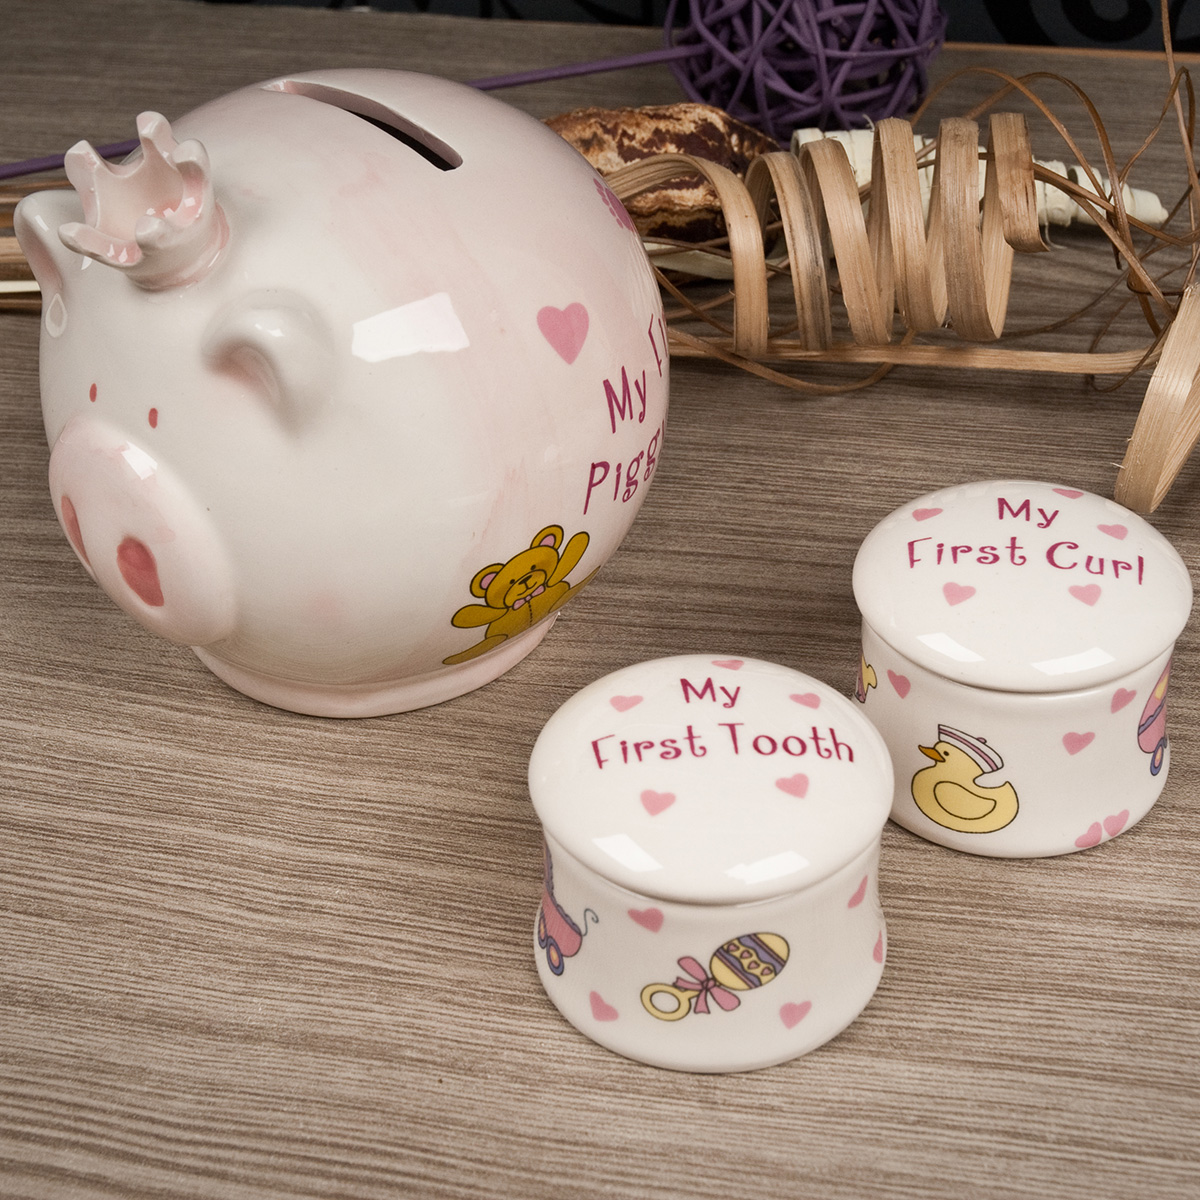 My First Piggy Bank, Tooth & Curl Trinket Boxes - Baby Girl